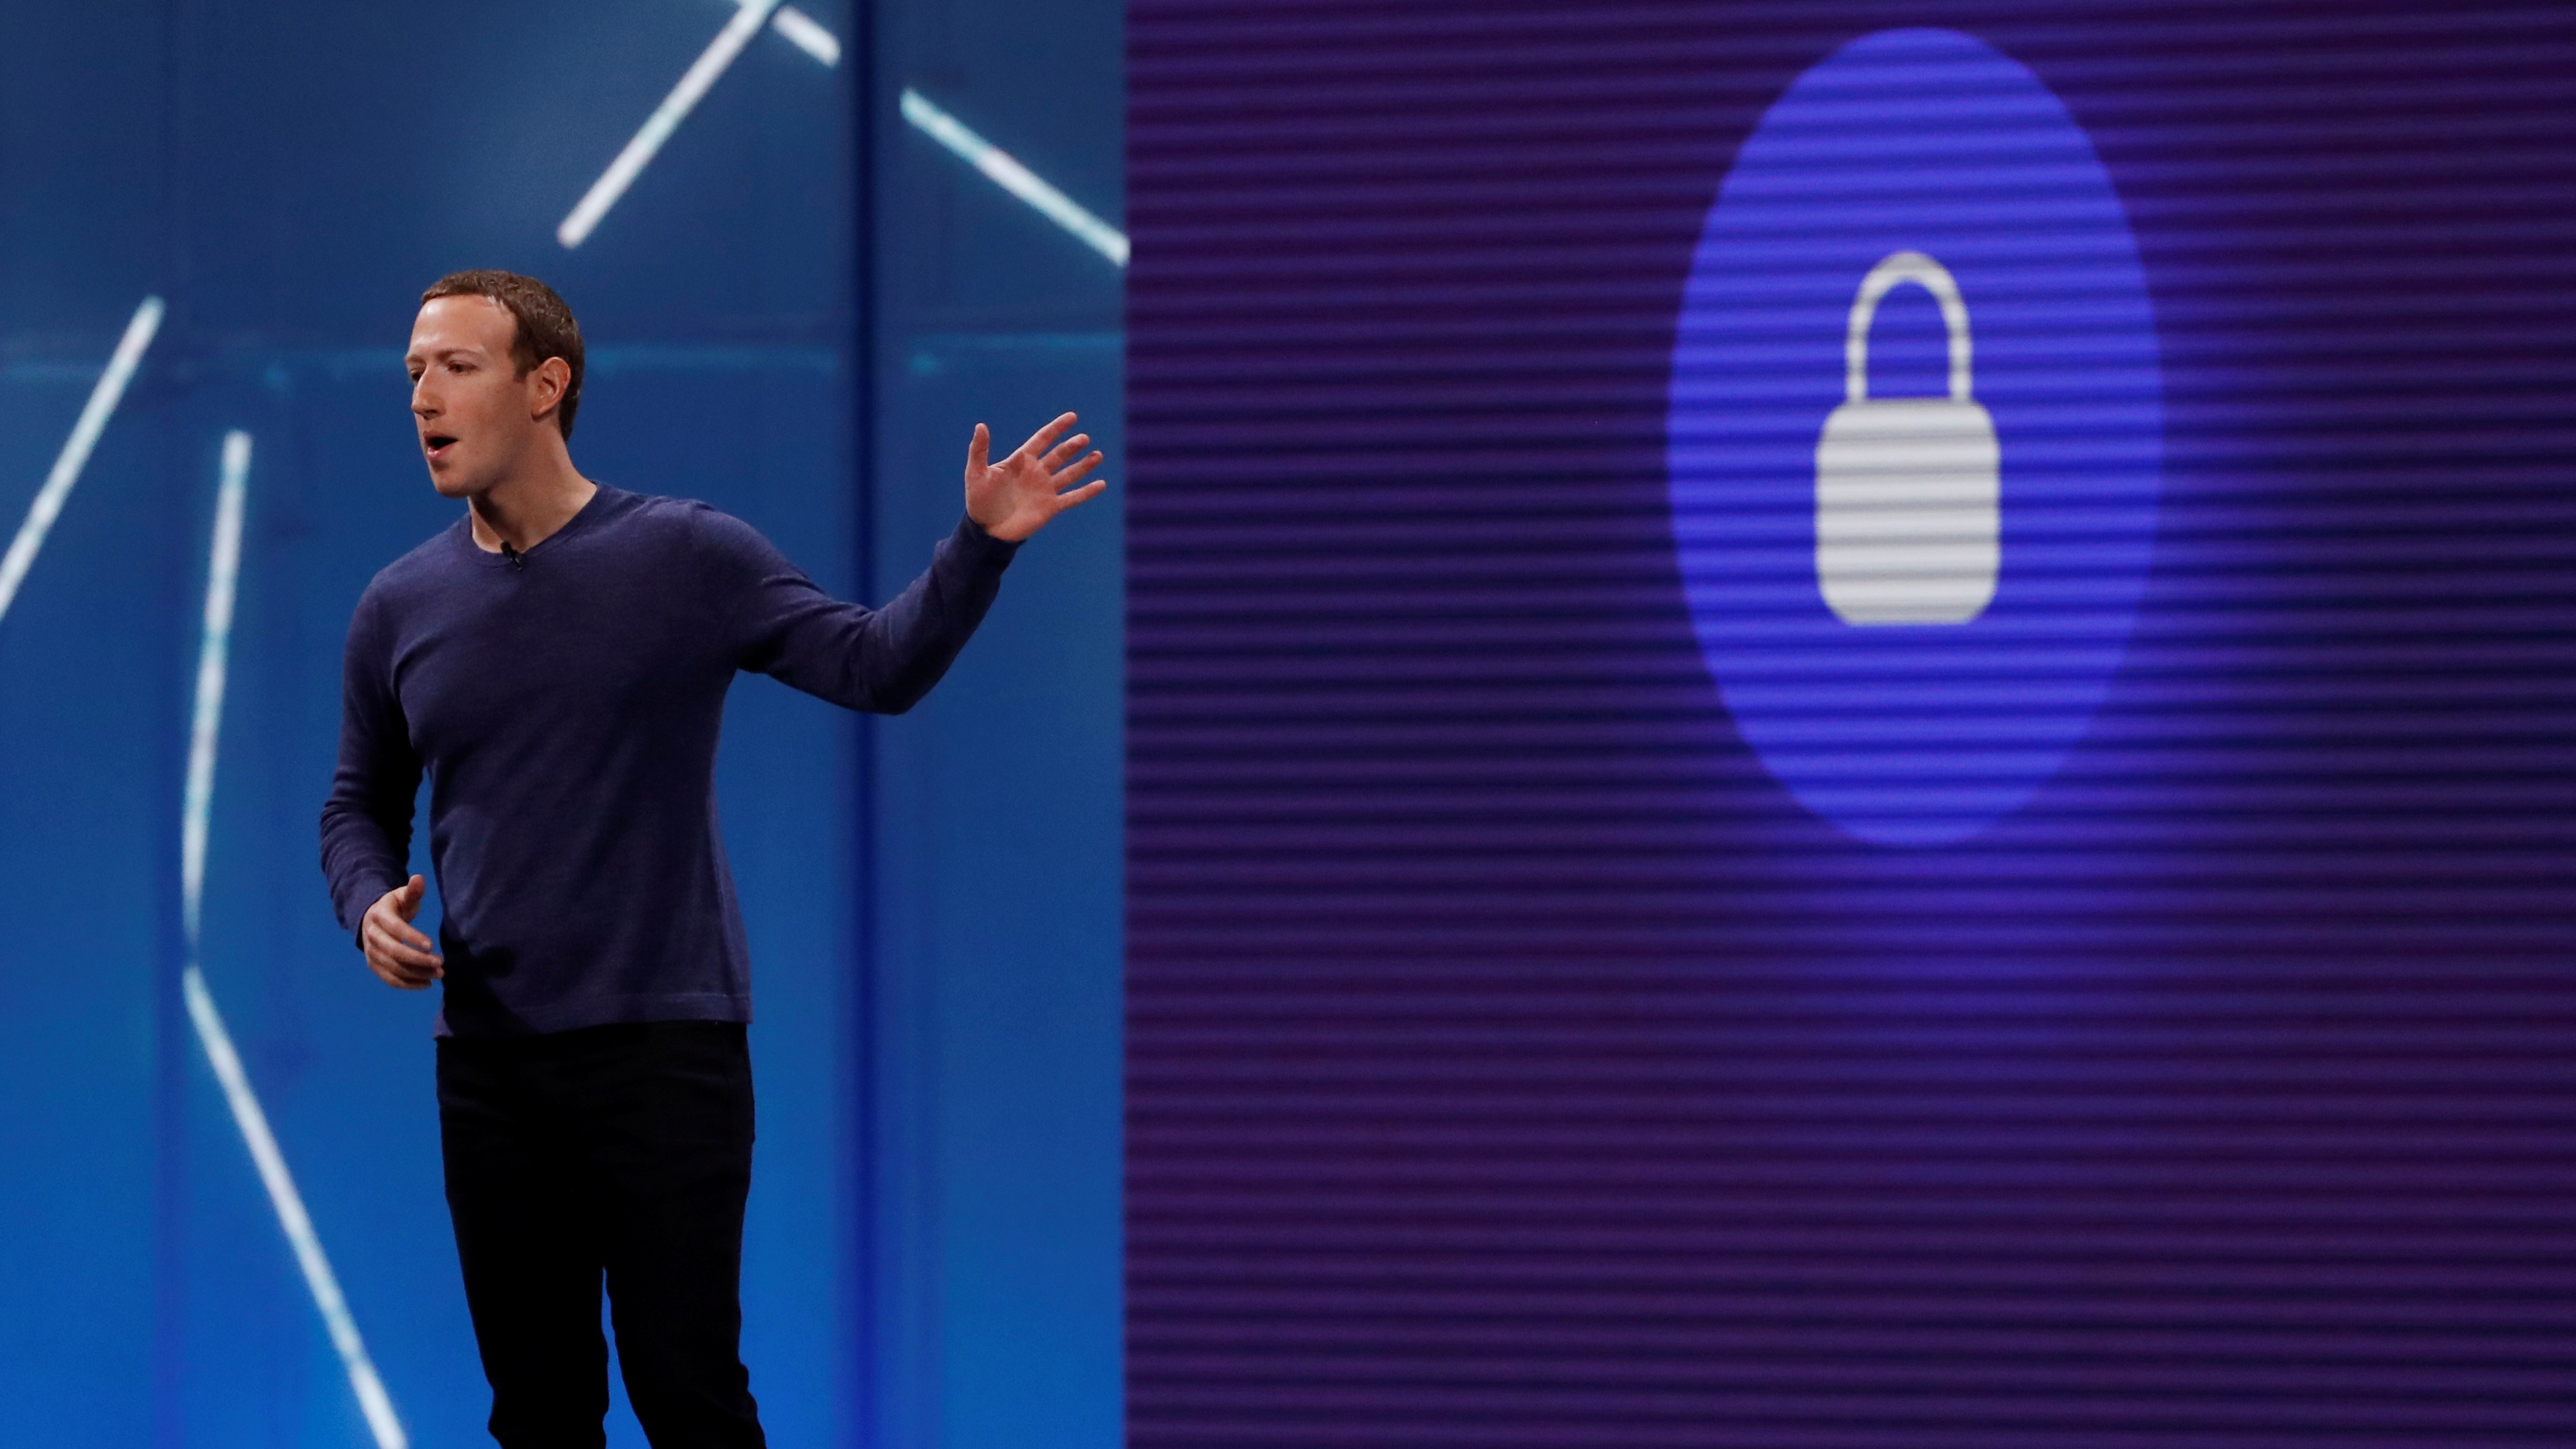 Facebook CEO Mark Zuckerberg speaks at the company's annual developers conference in San Jose, Calif., May 1, 2018. Facebook is beginning to enforce a ban on white nationalist content.